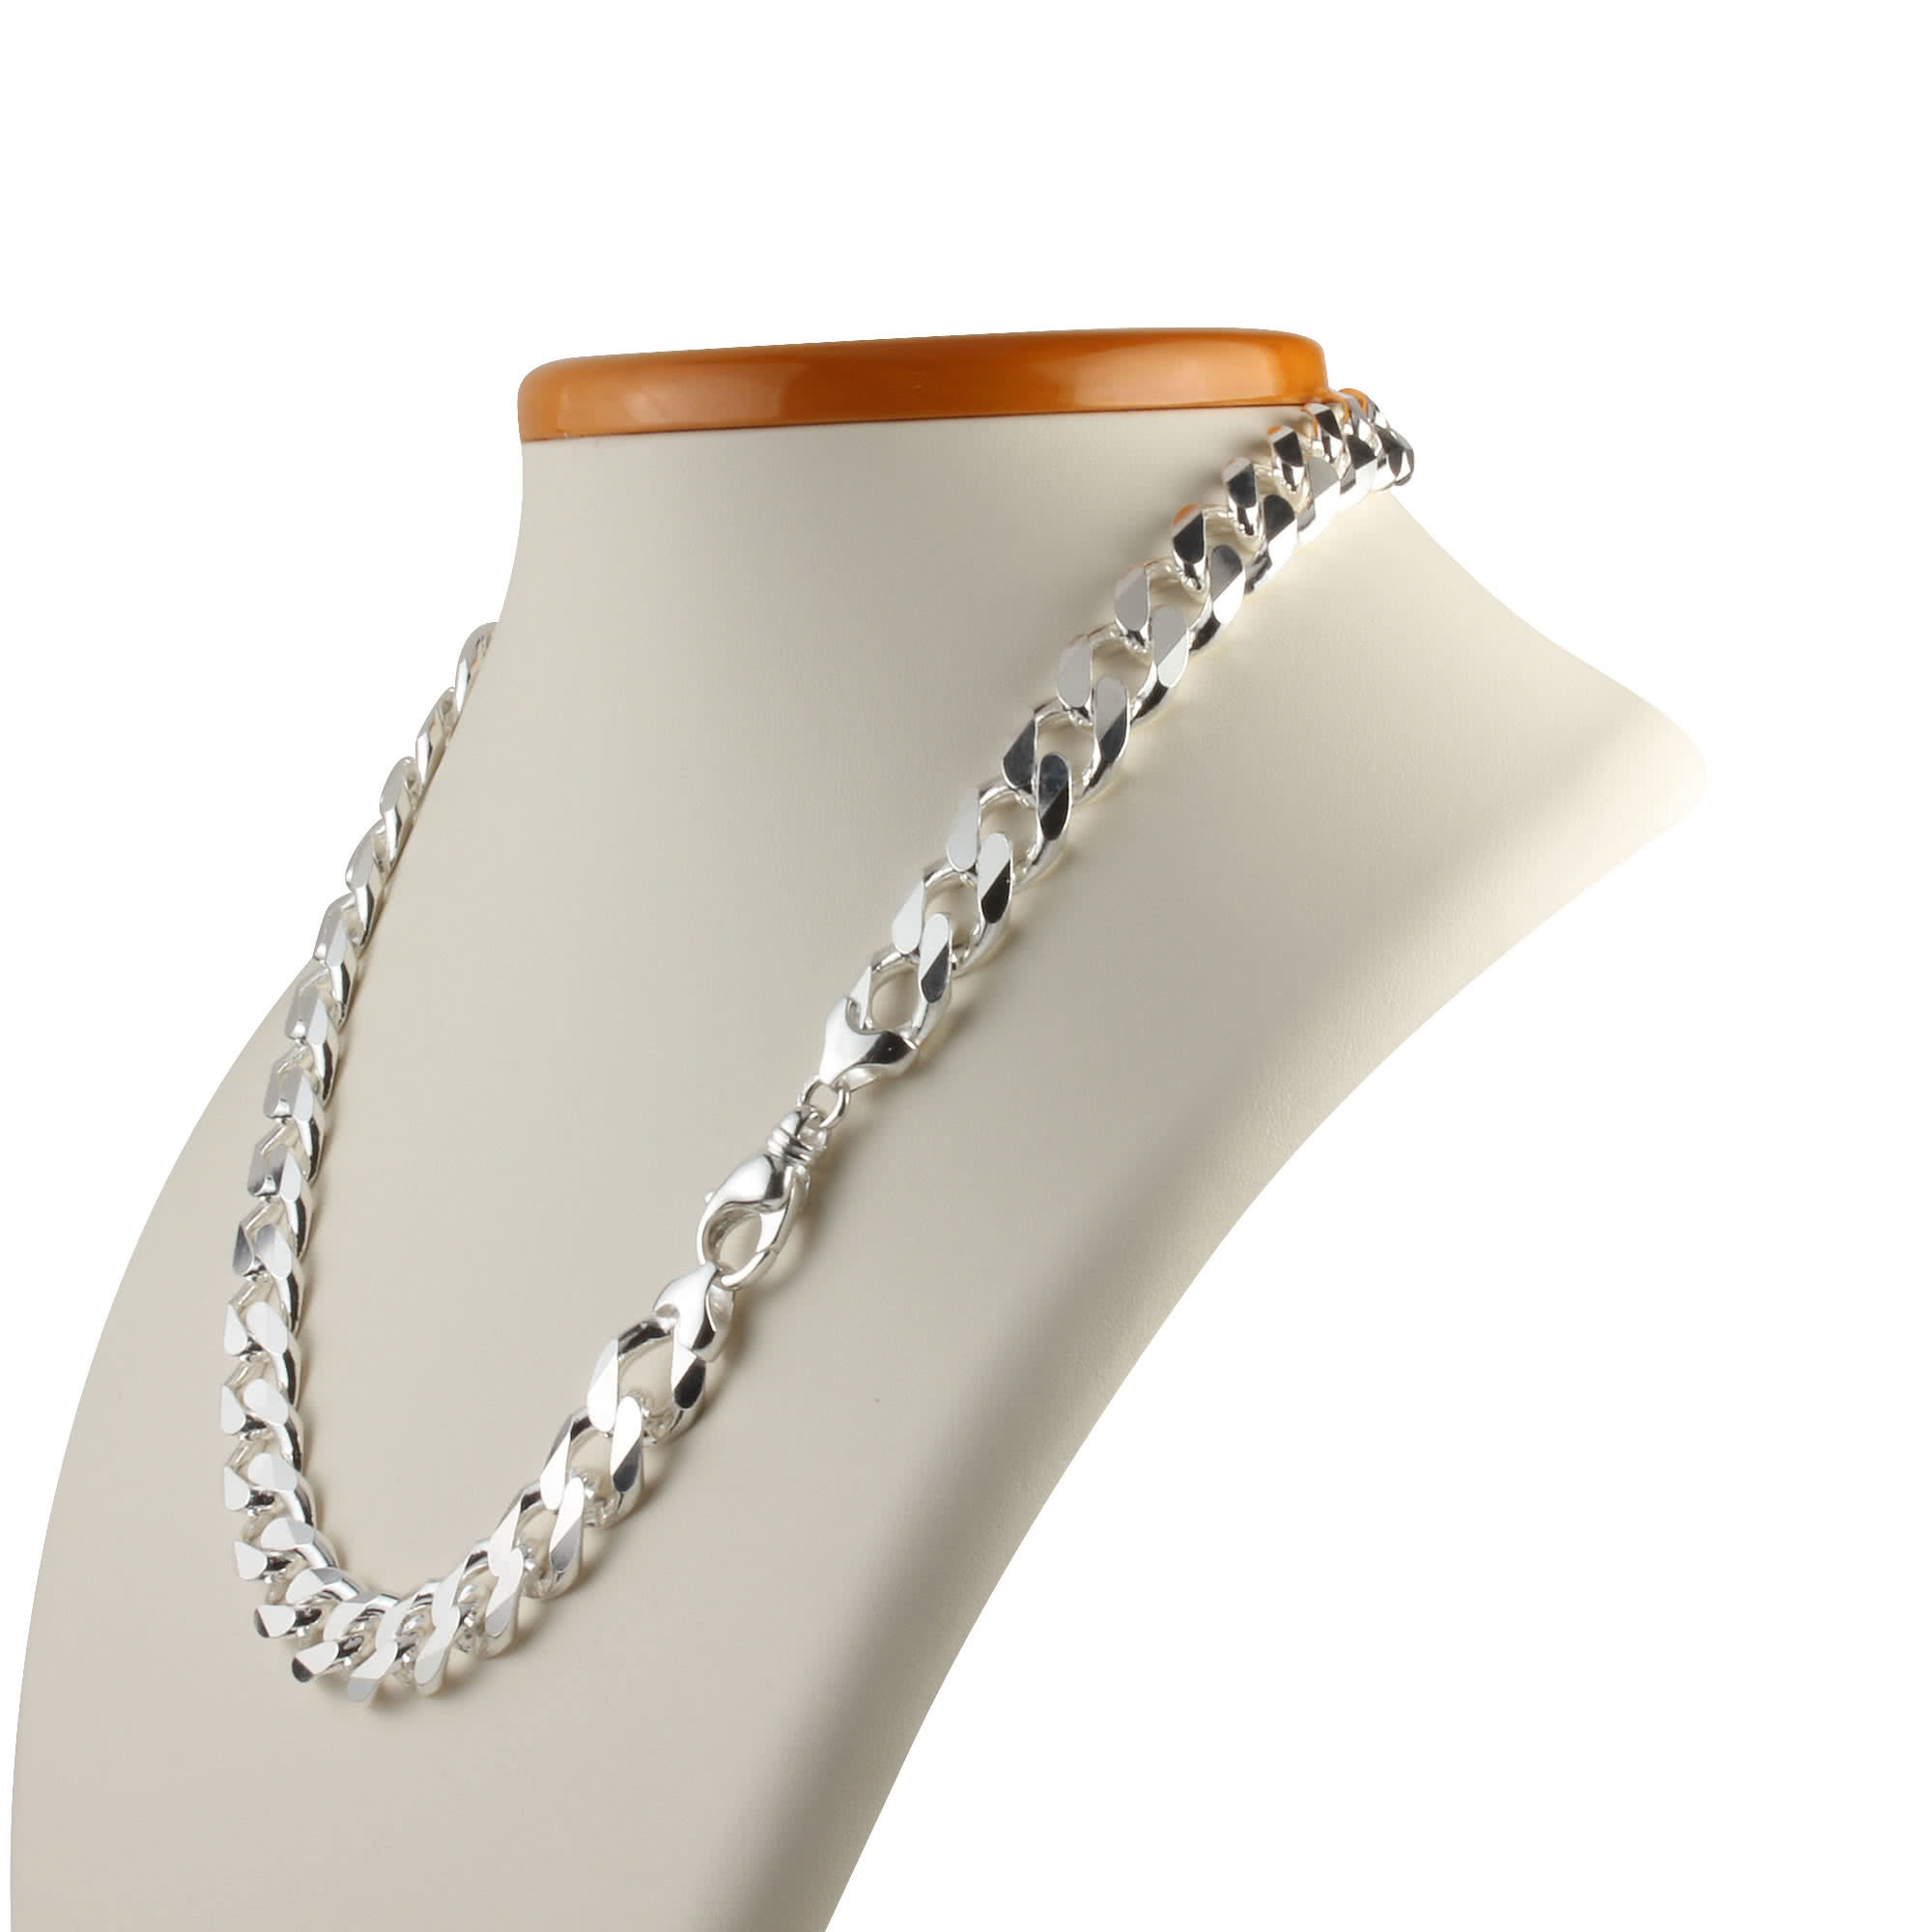 Heavy Wide Silver Curb Chain 13Mm Width Within Most Up To Date Curb Chain Necklaces (View 7 of 25)